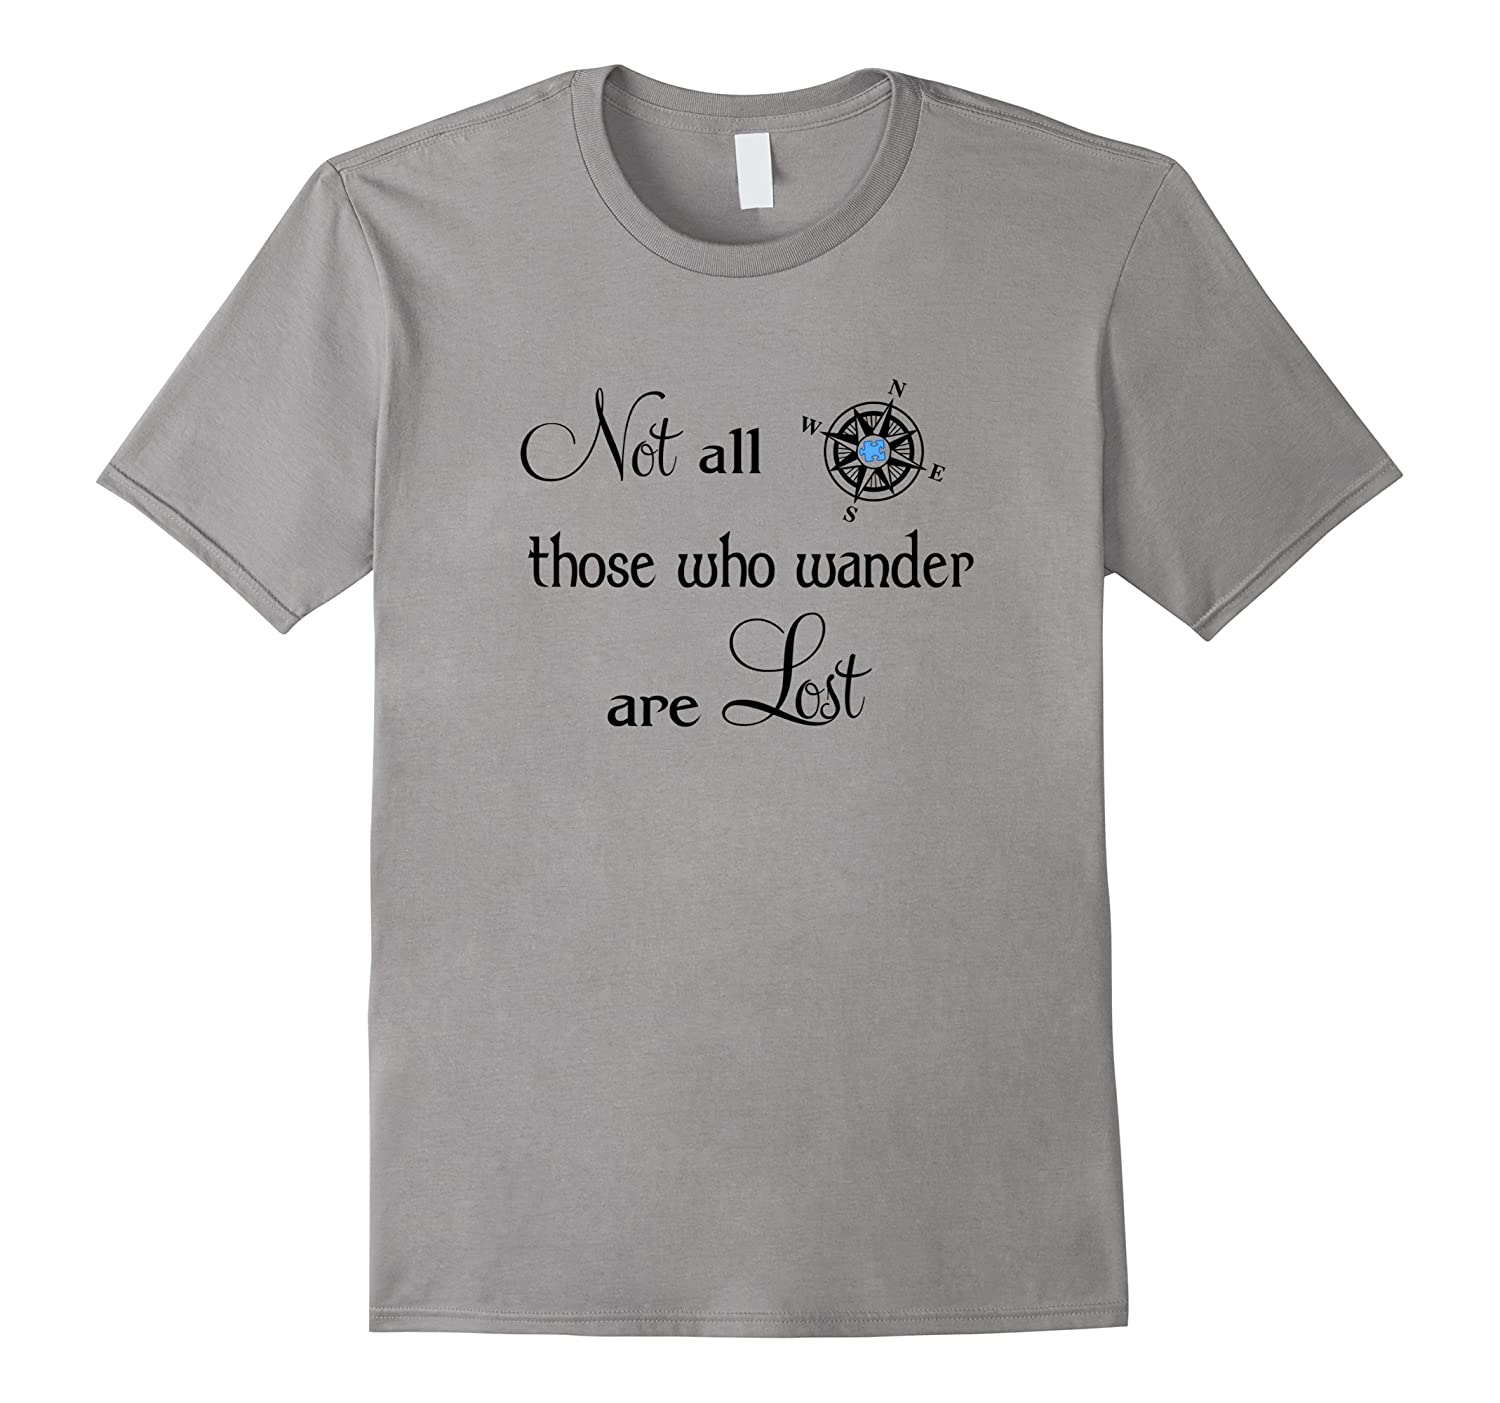 Autism Shirt Not All Who Wander T-Shirt for Adults and Kids-CD